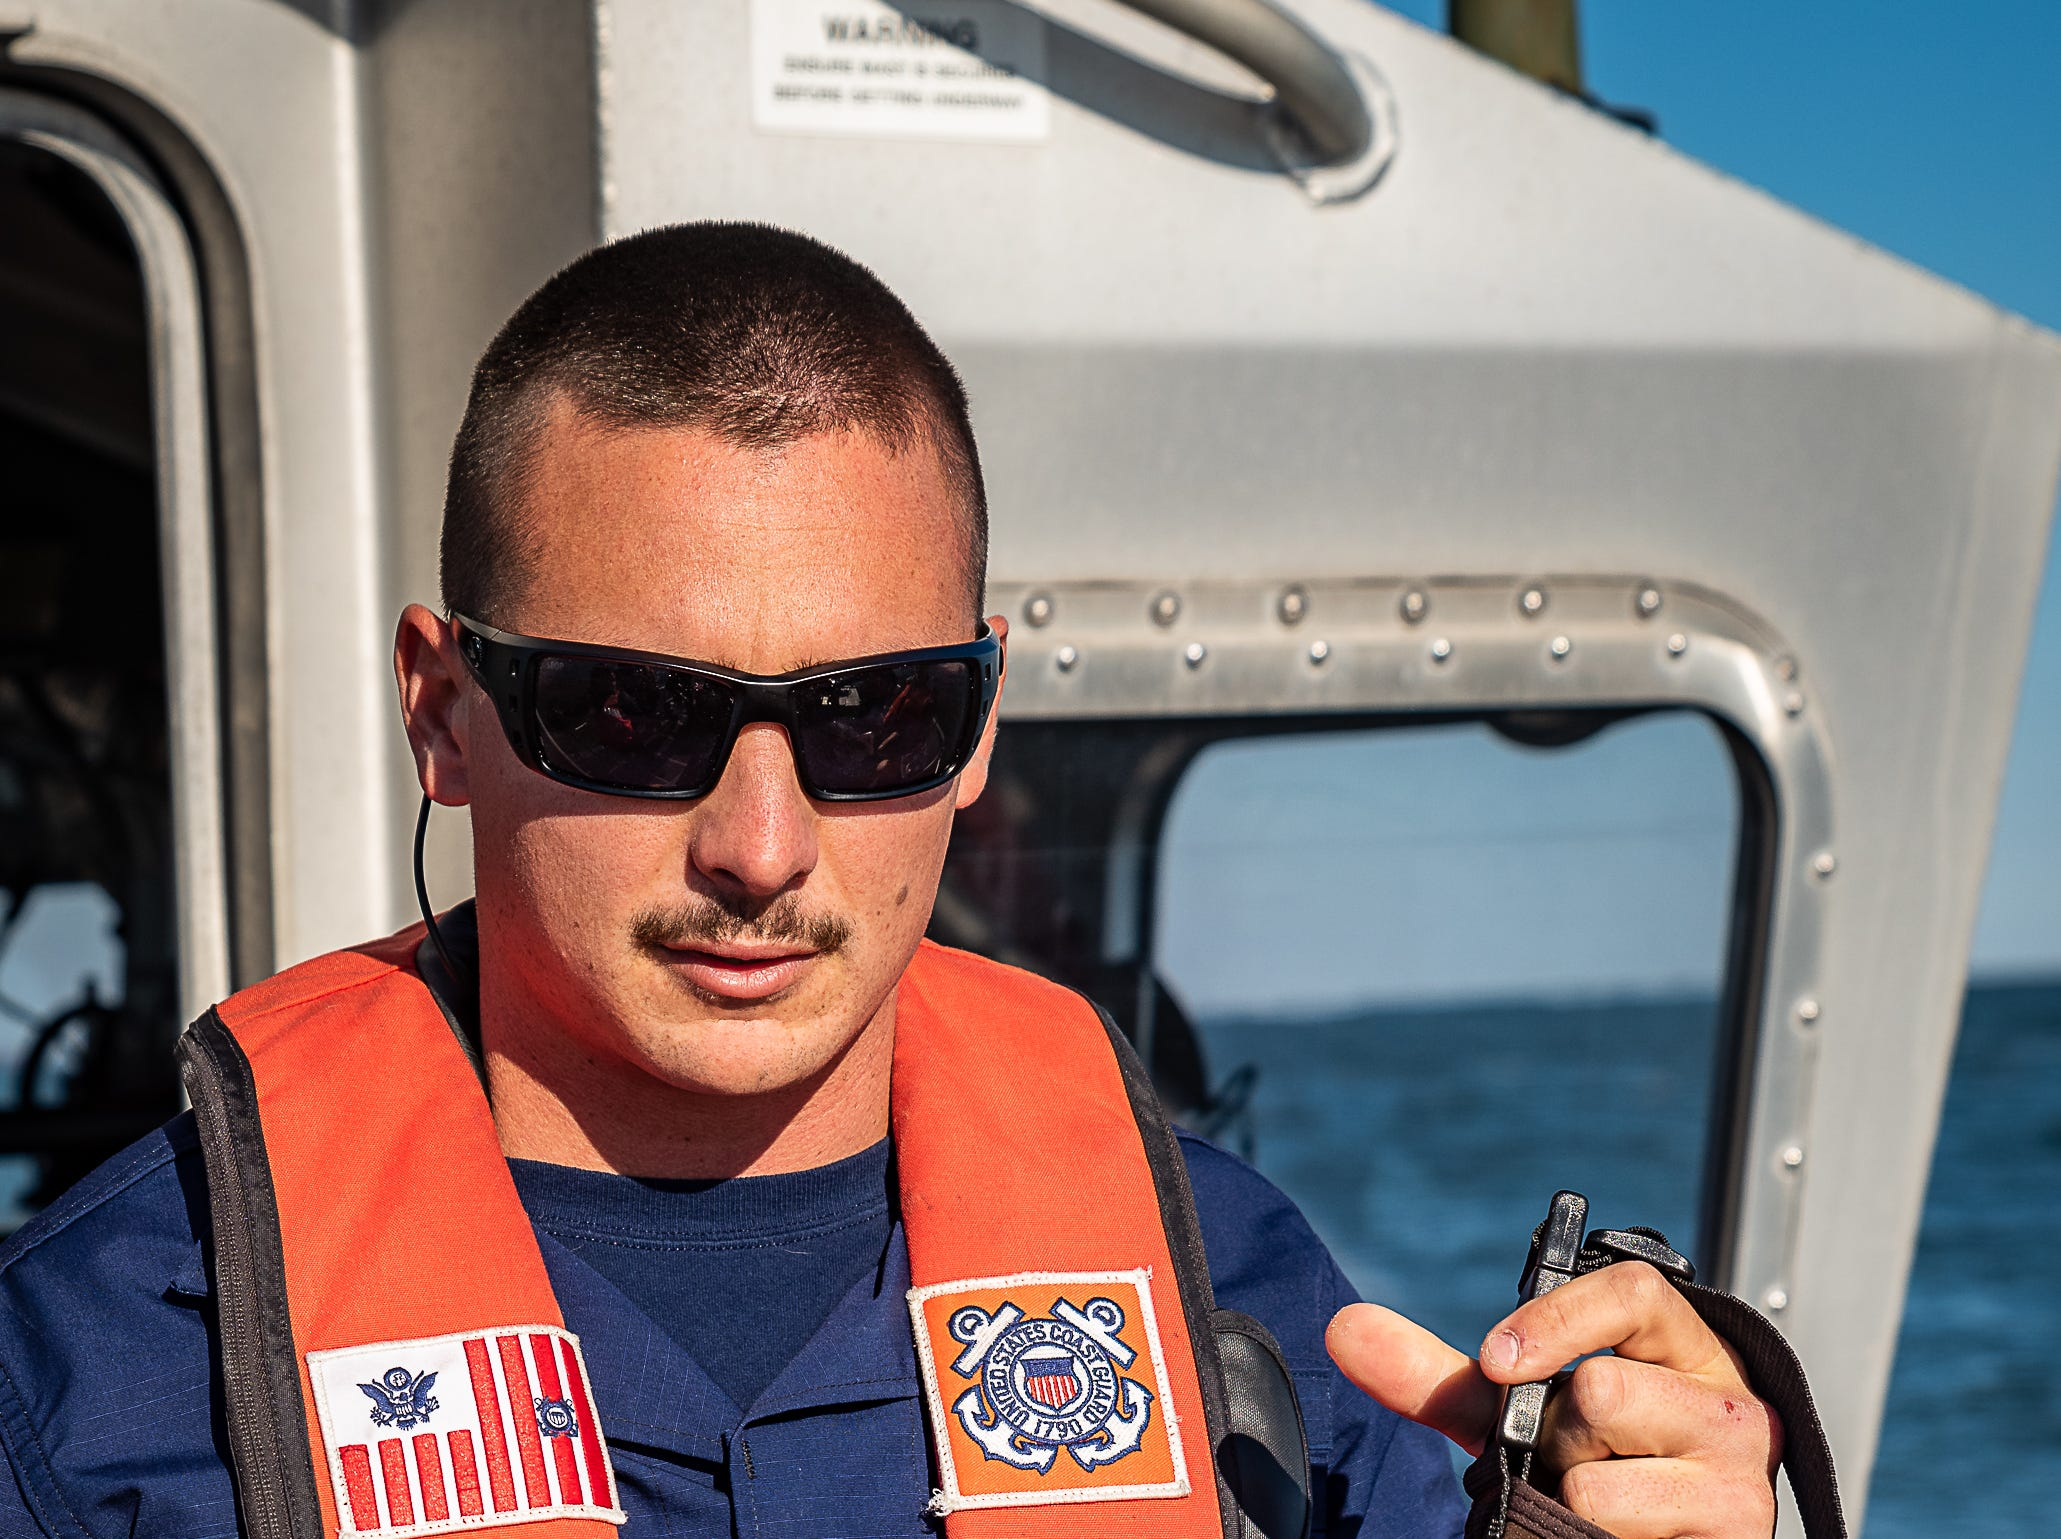 Boatswain Mate 2nd Class Blake Westforth talks about survival techniques during a U.S. Coast Guard demonstration on Oct. 30, 2018.